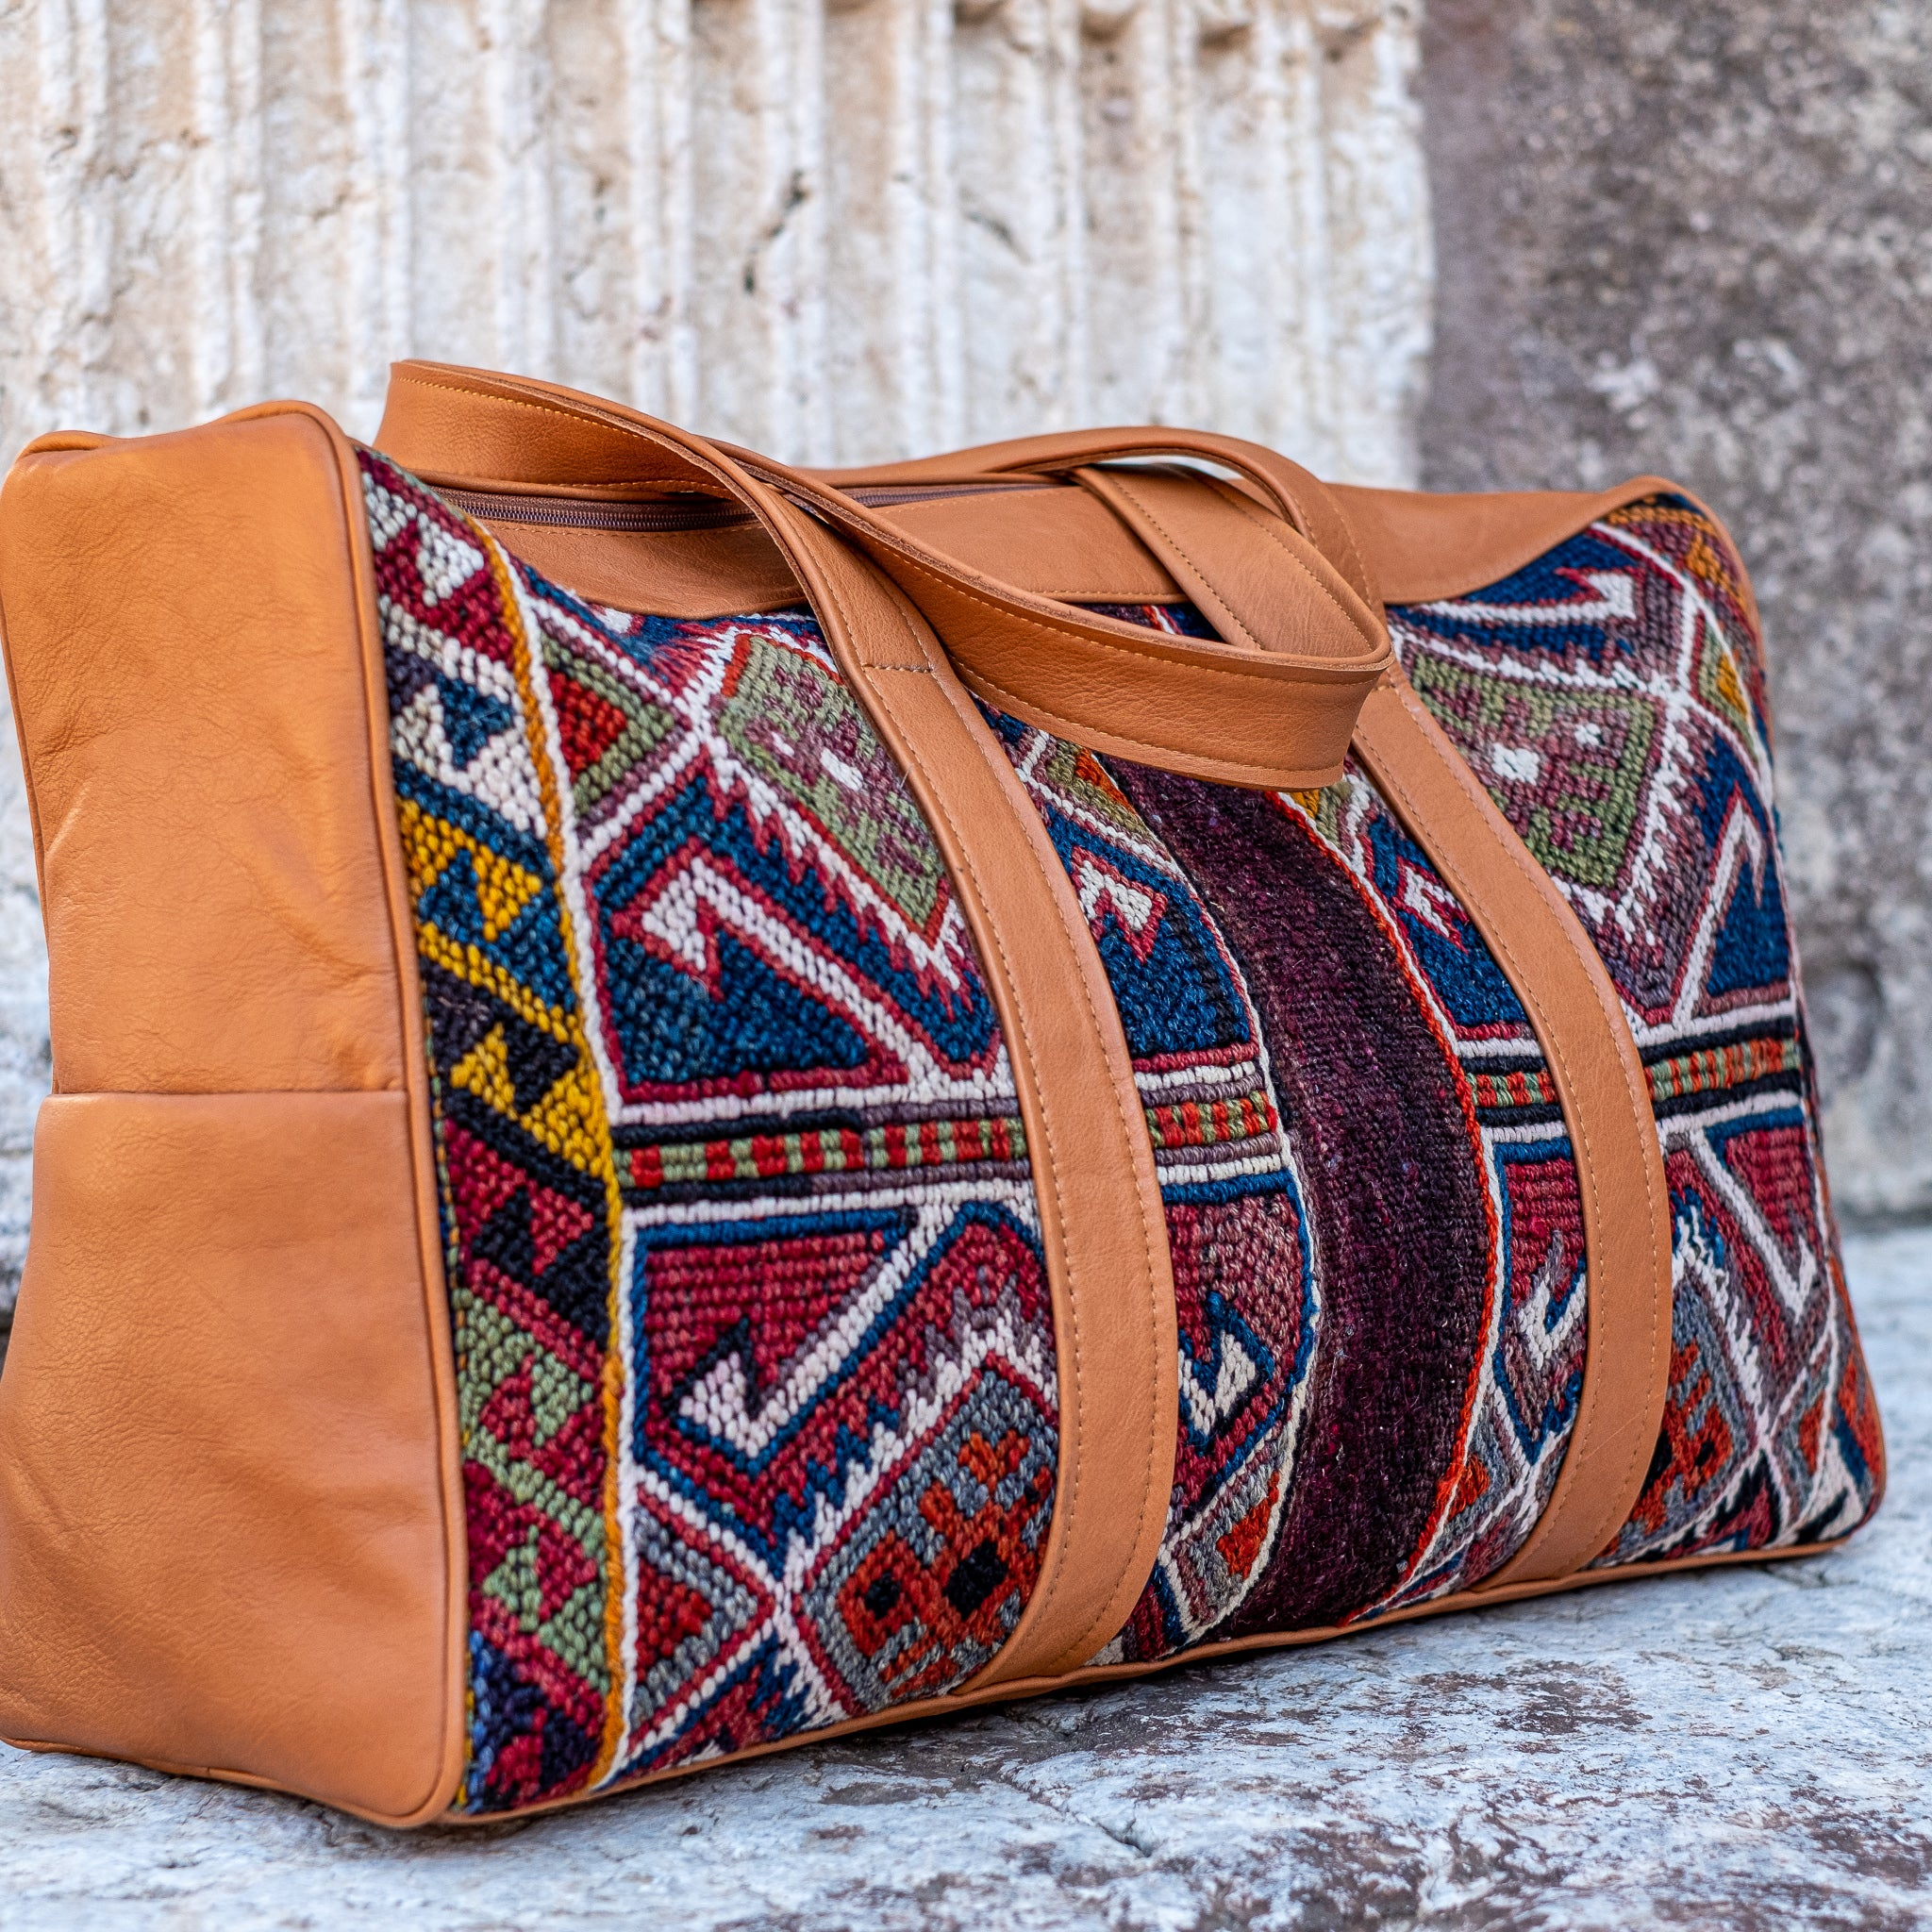 Kilim & Leather Overnight Bag #42 (w/ side pockets)